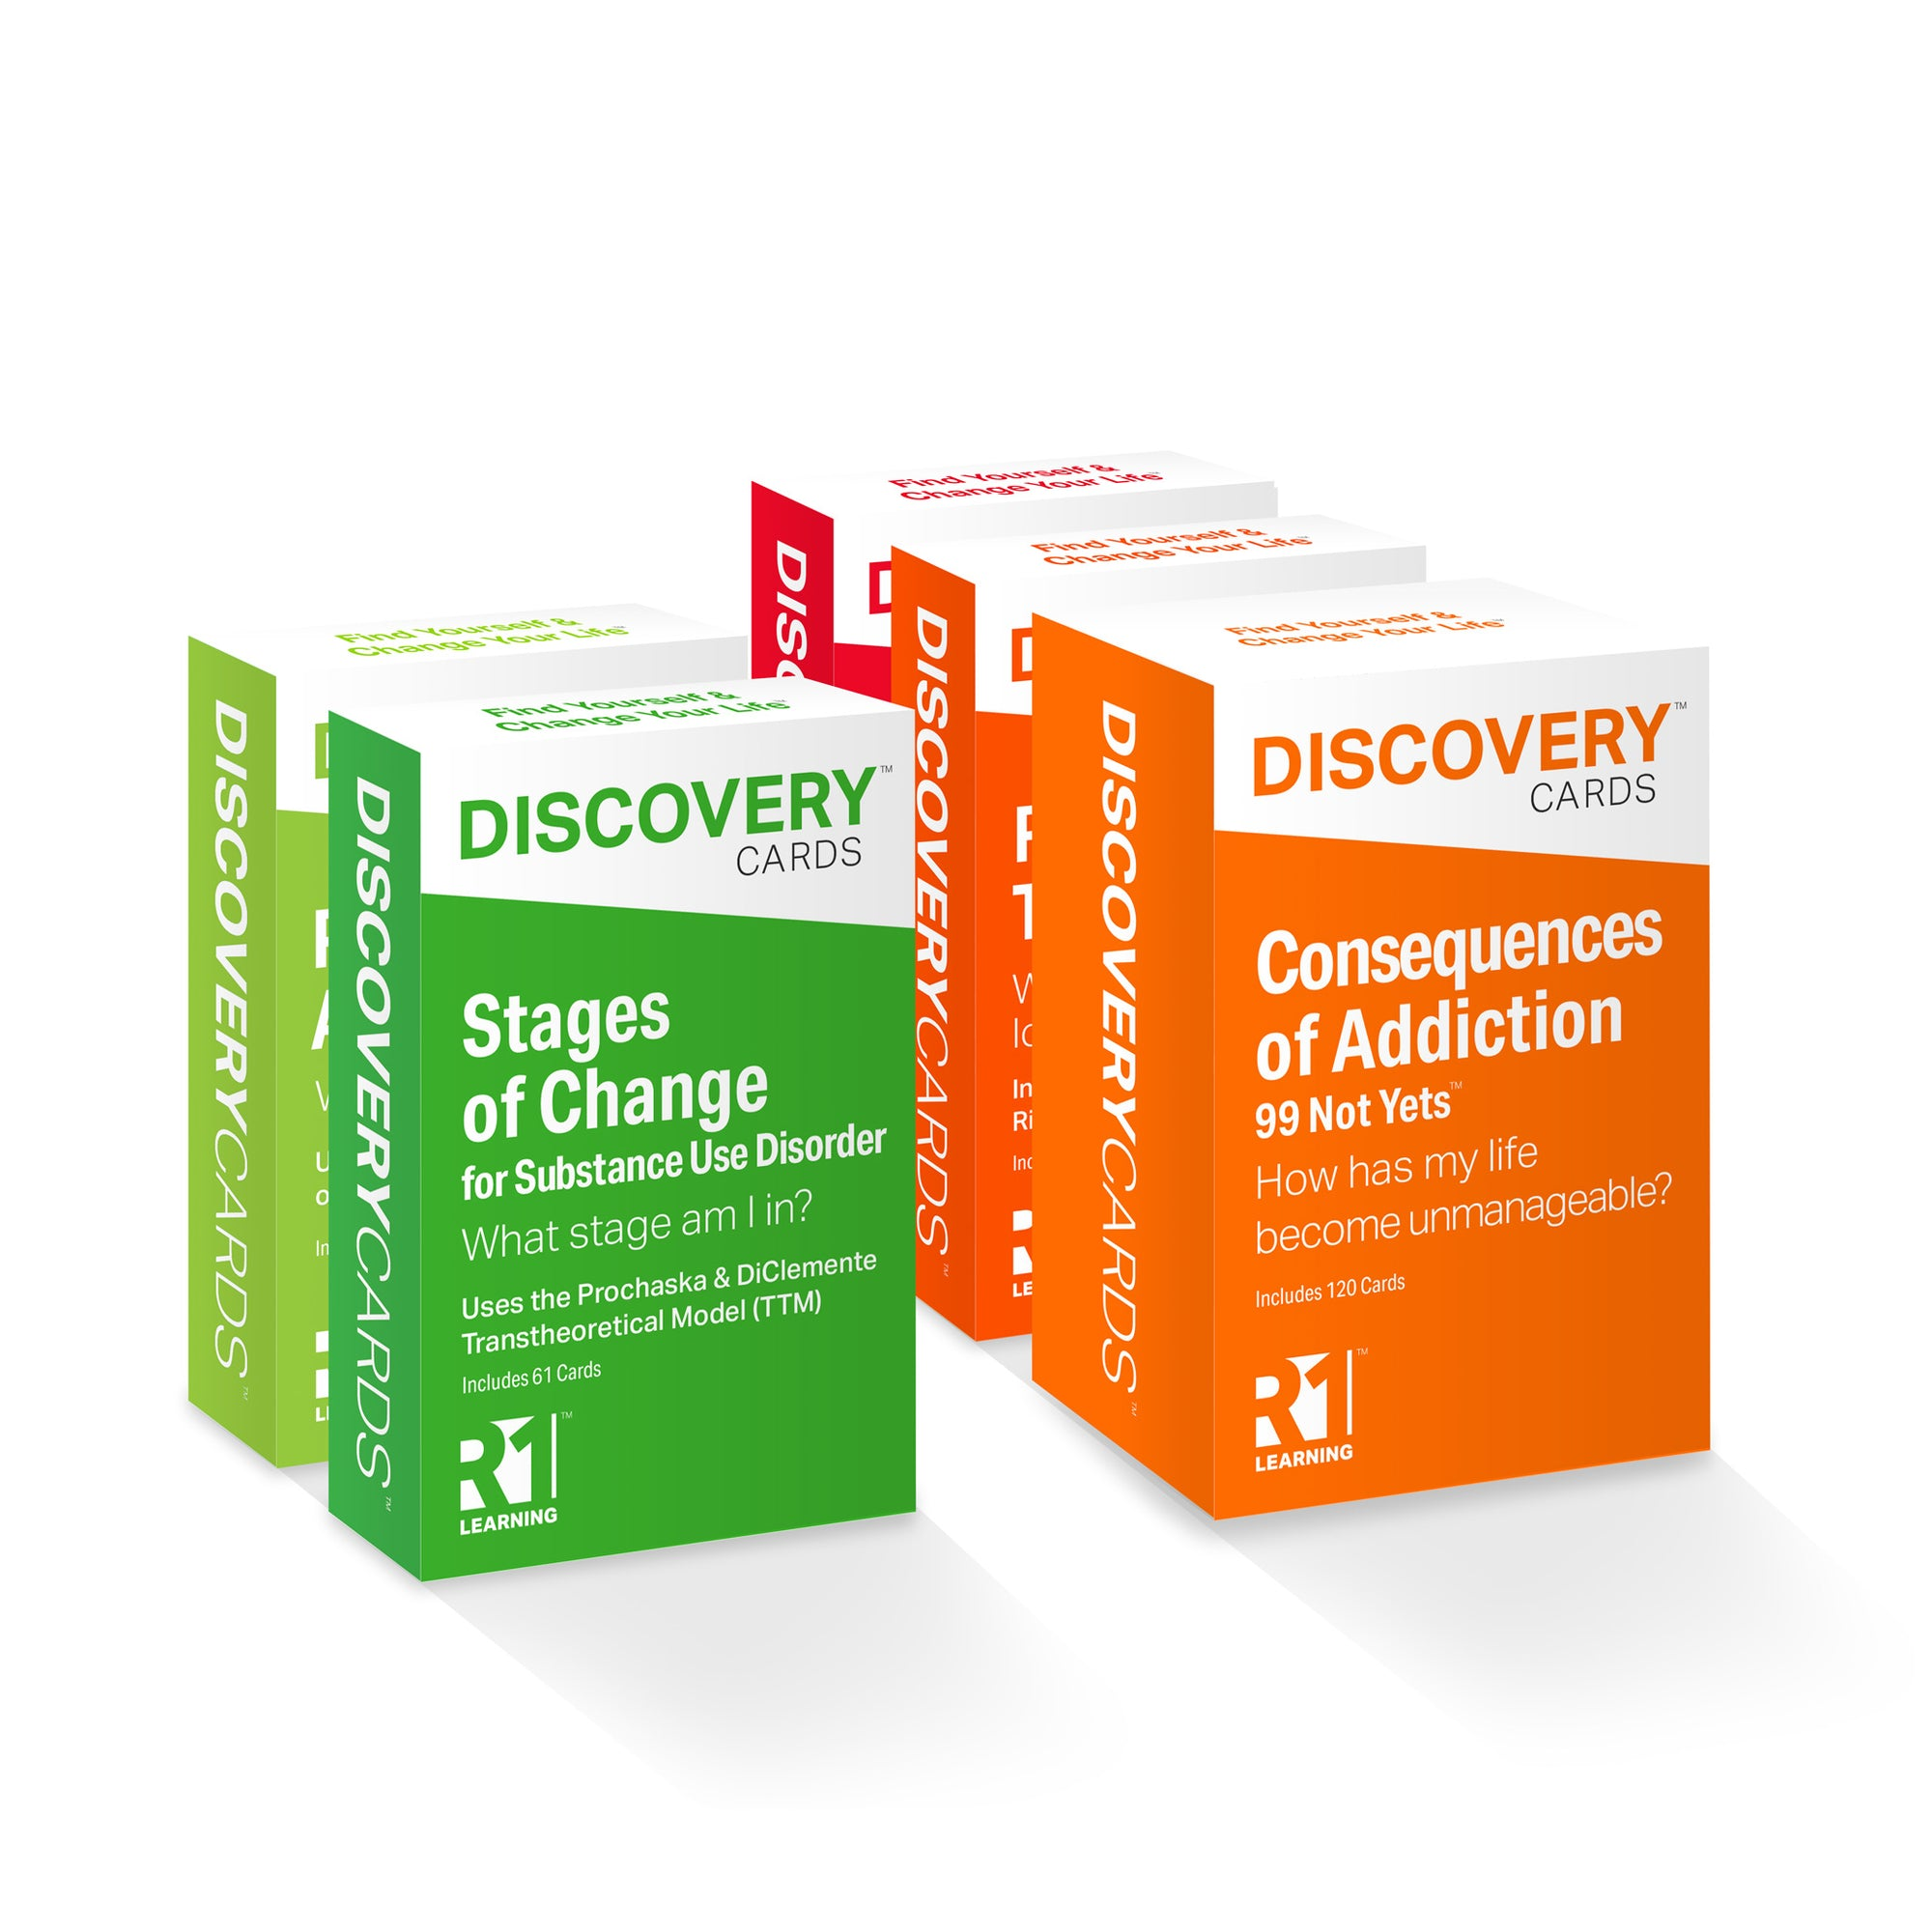 Discovery Cards Variety Pack - 5 Decks